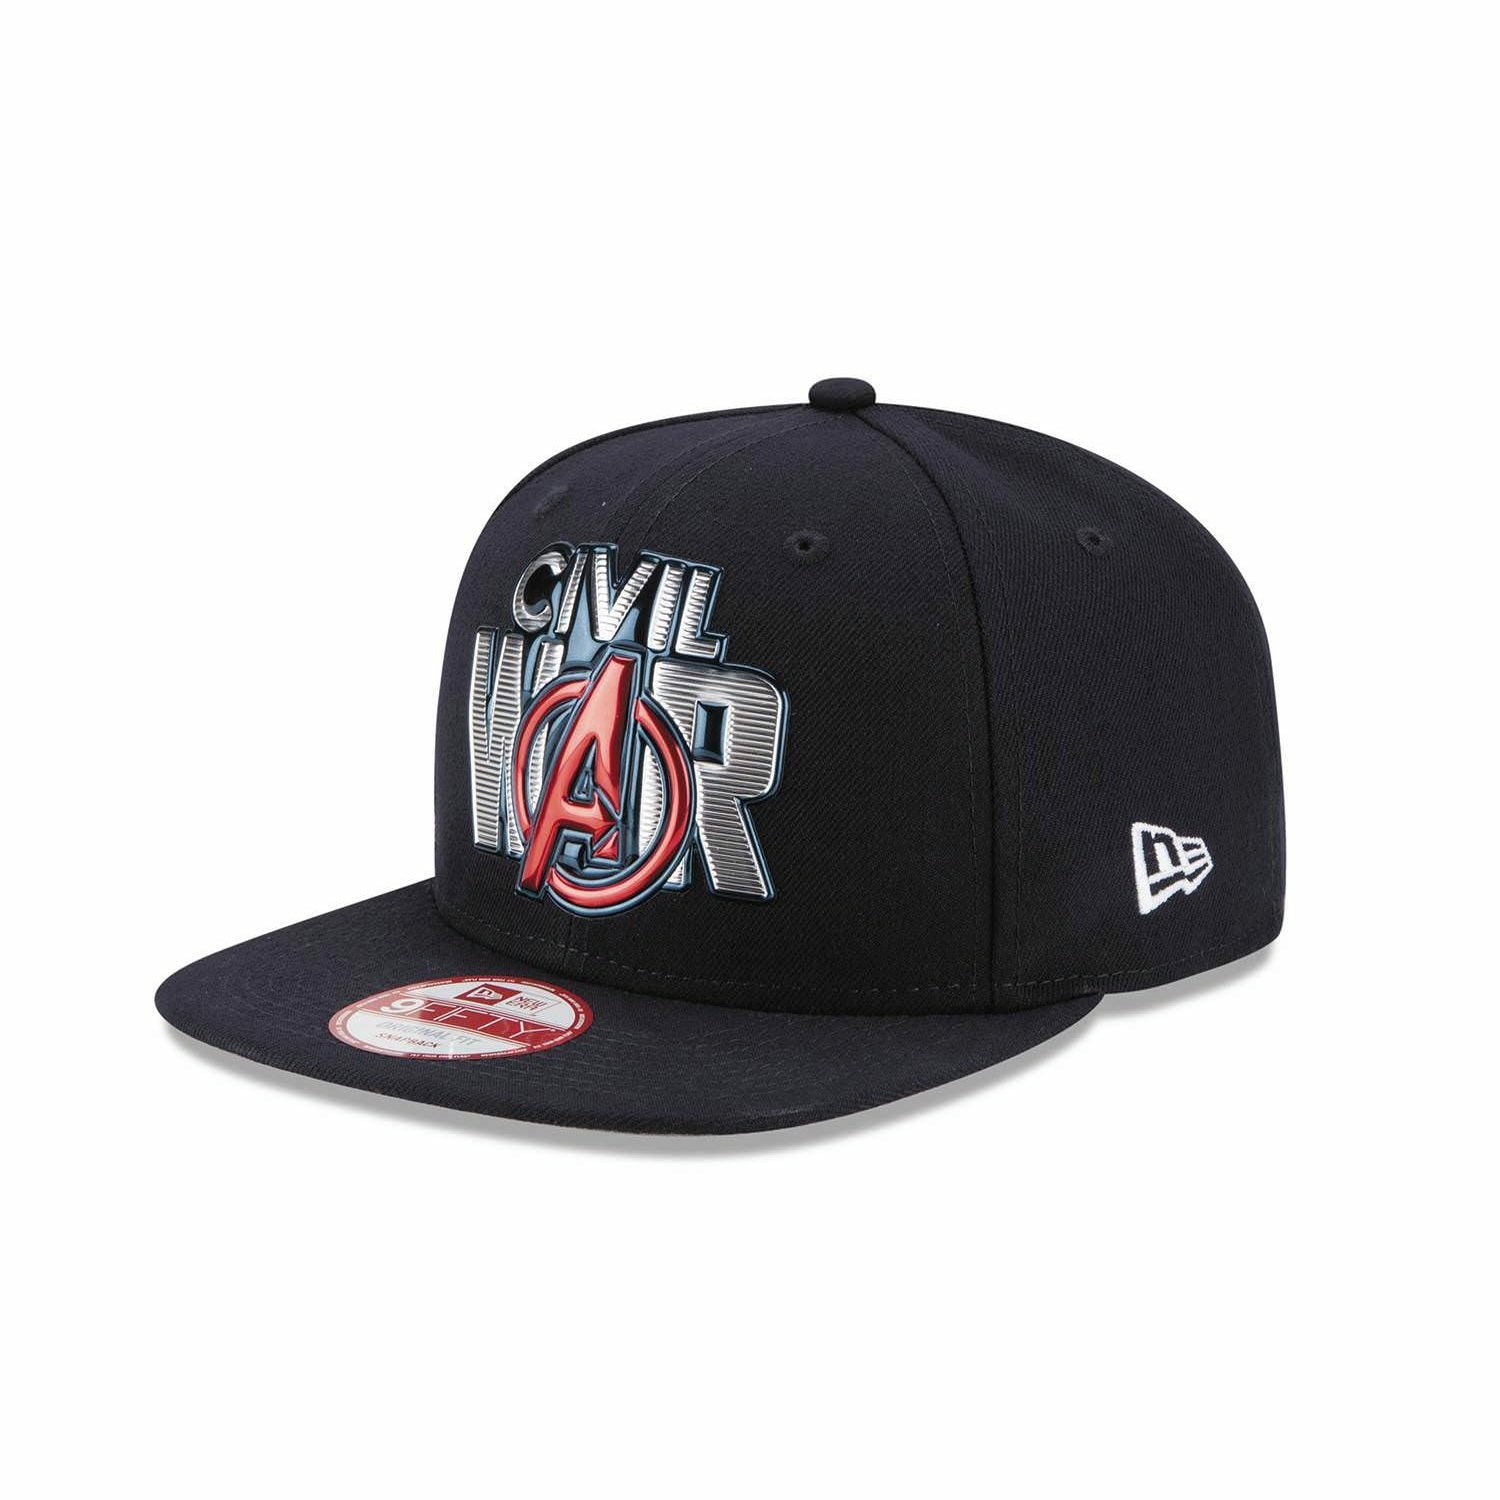 Marvel Captain America 3 Civil War Title Chrome 950 Snapback Baseball Cap